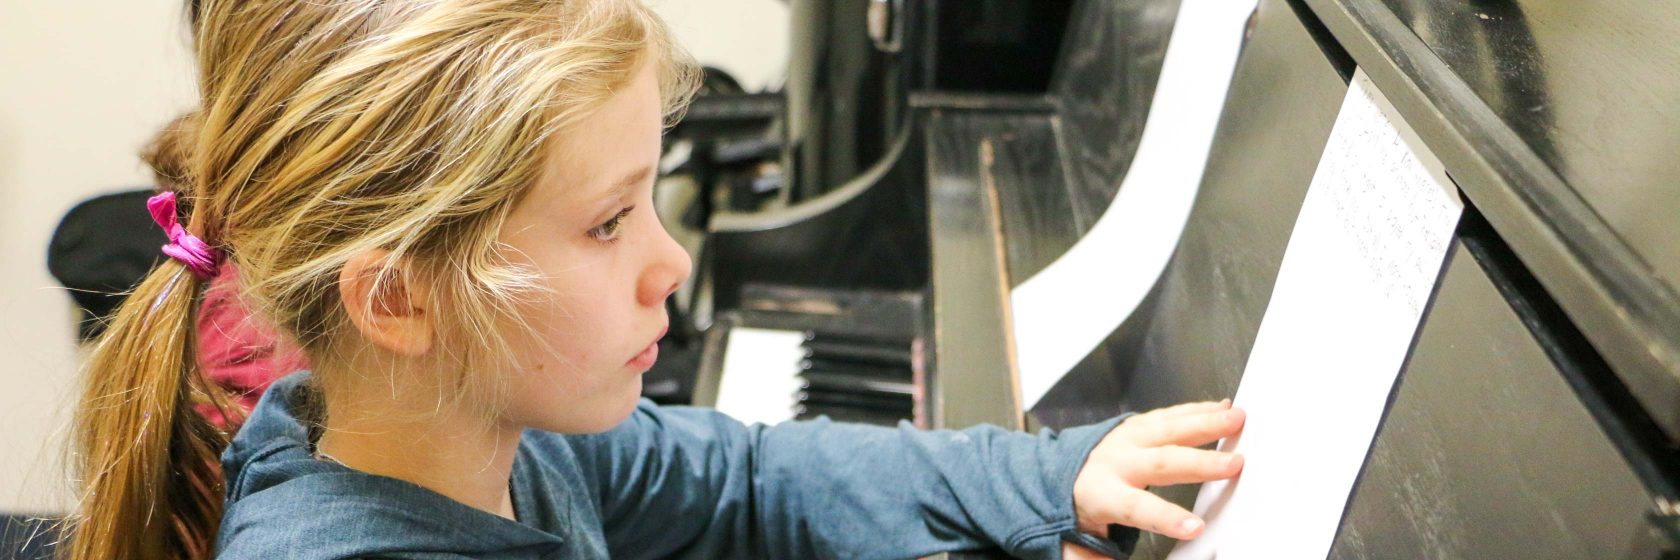 A student working on learning the piano.